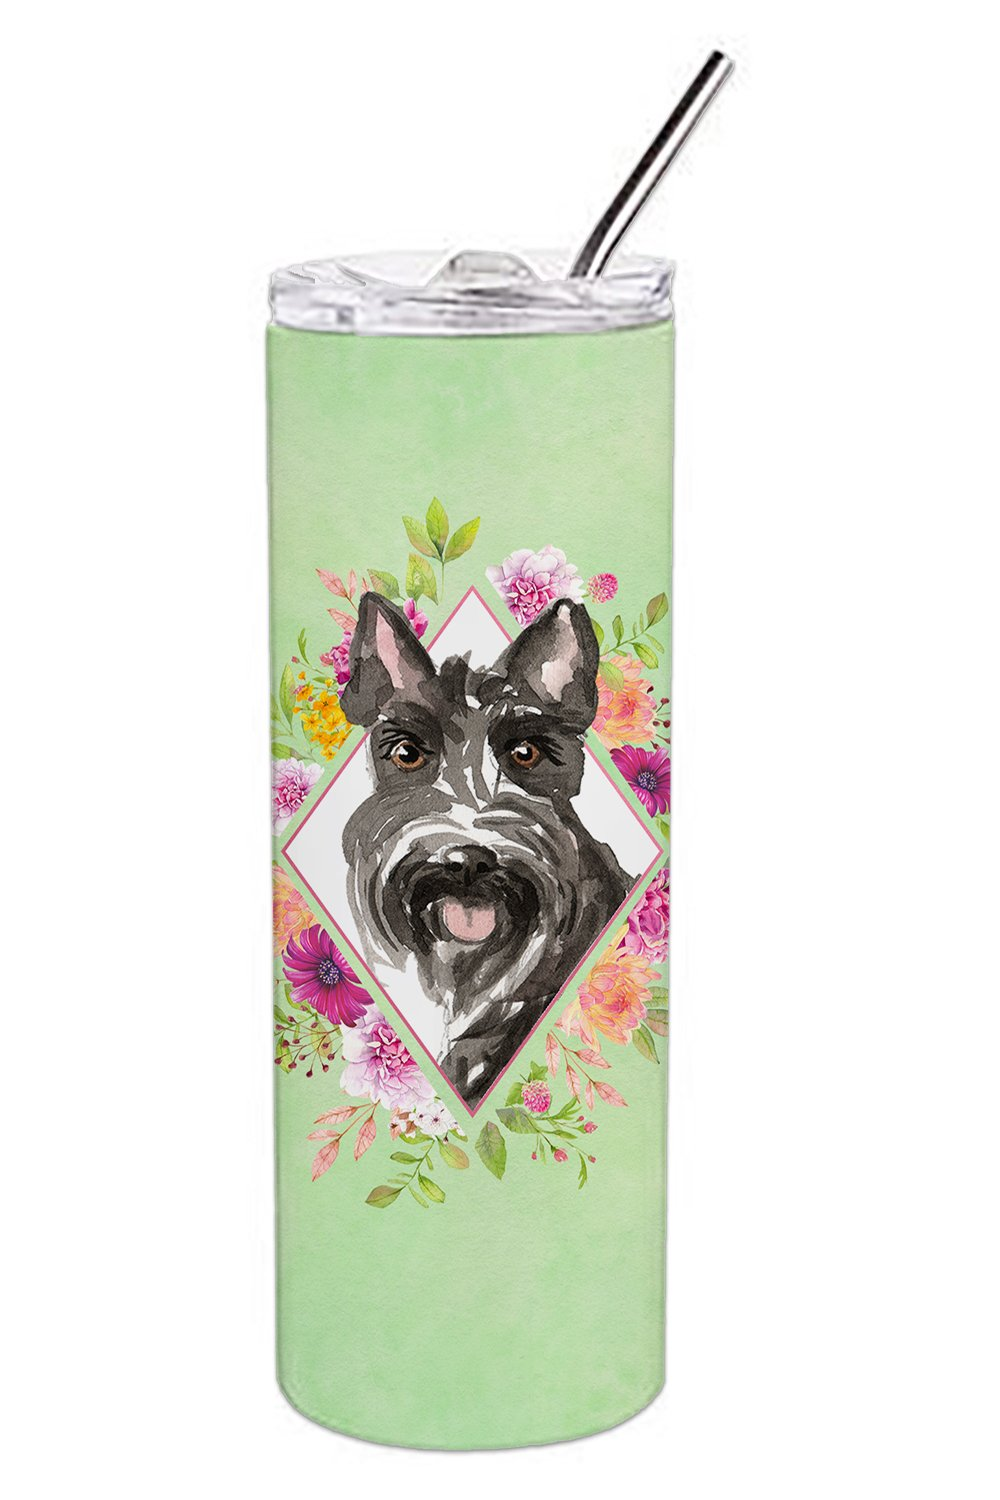 Scottish Terrier Green Flowers Double Walled Stainless Steel 20 oz Skinny Tumbler CK4374TBL20 by Caroline's Treasures